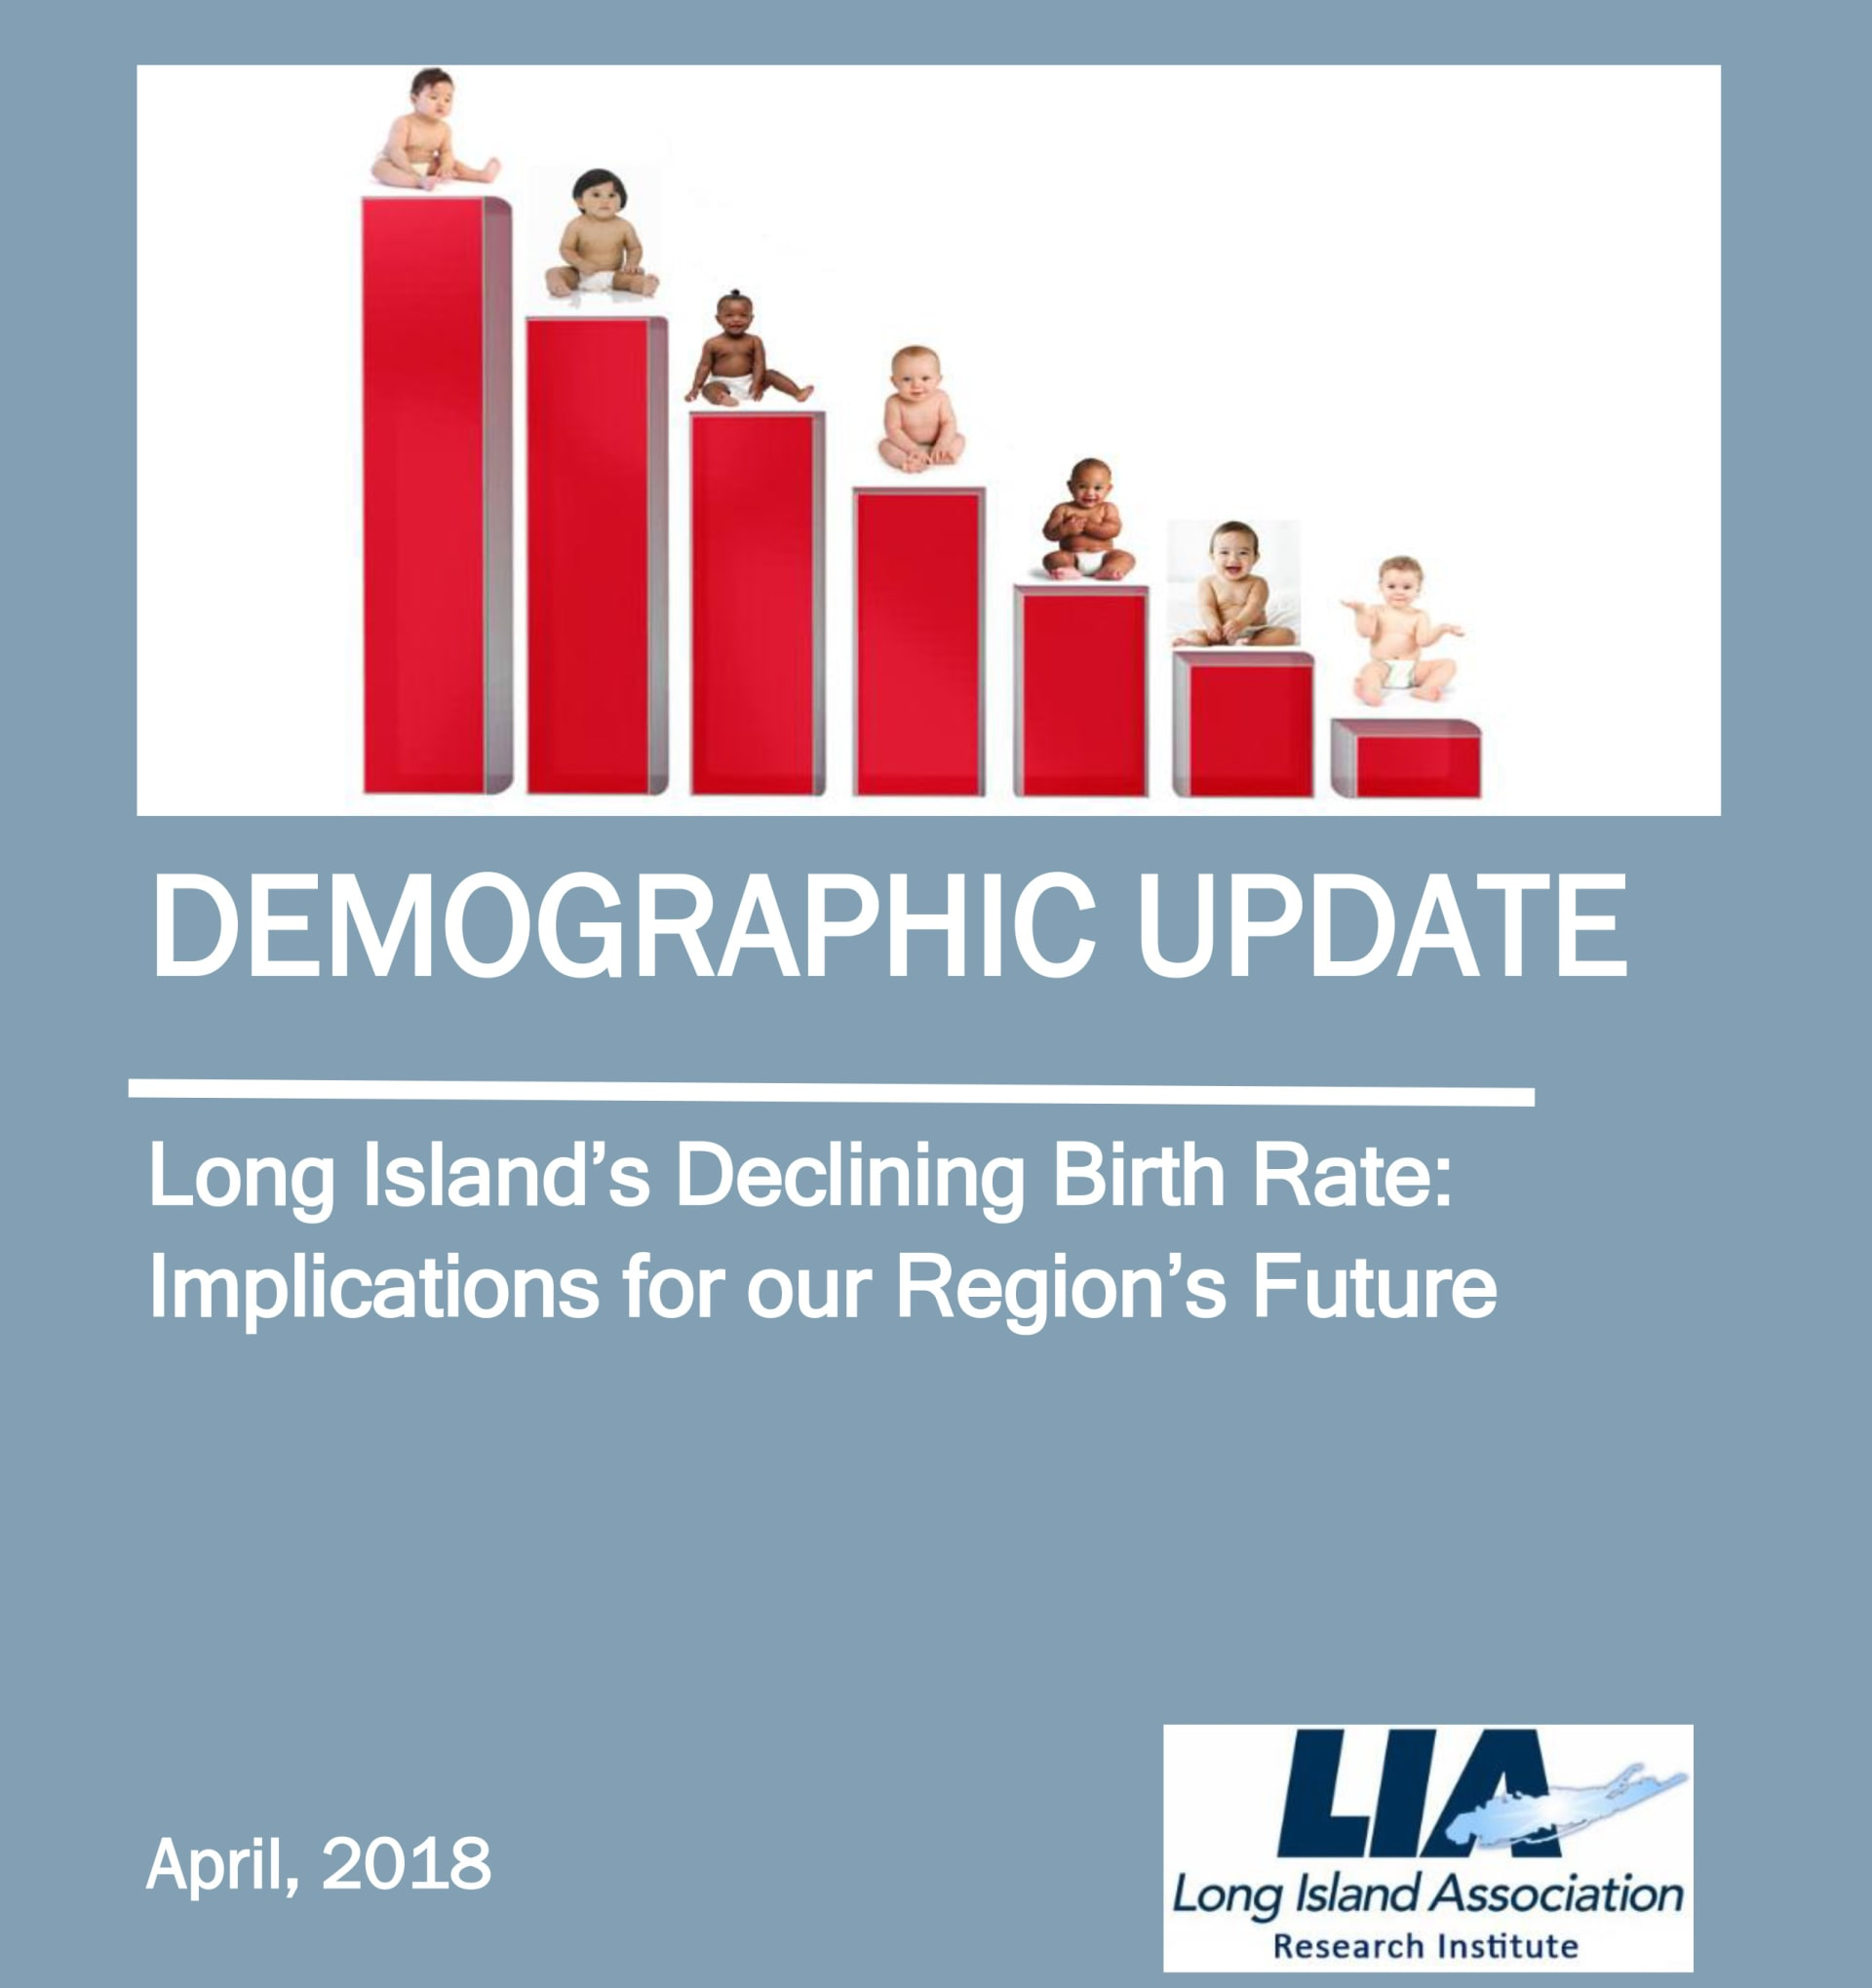 Demographic Update- Long Island's Declining Birth Rate